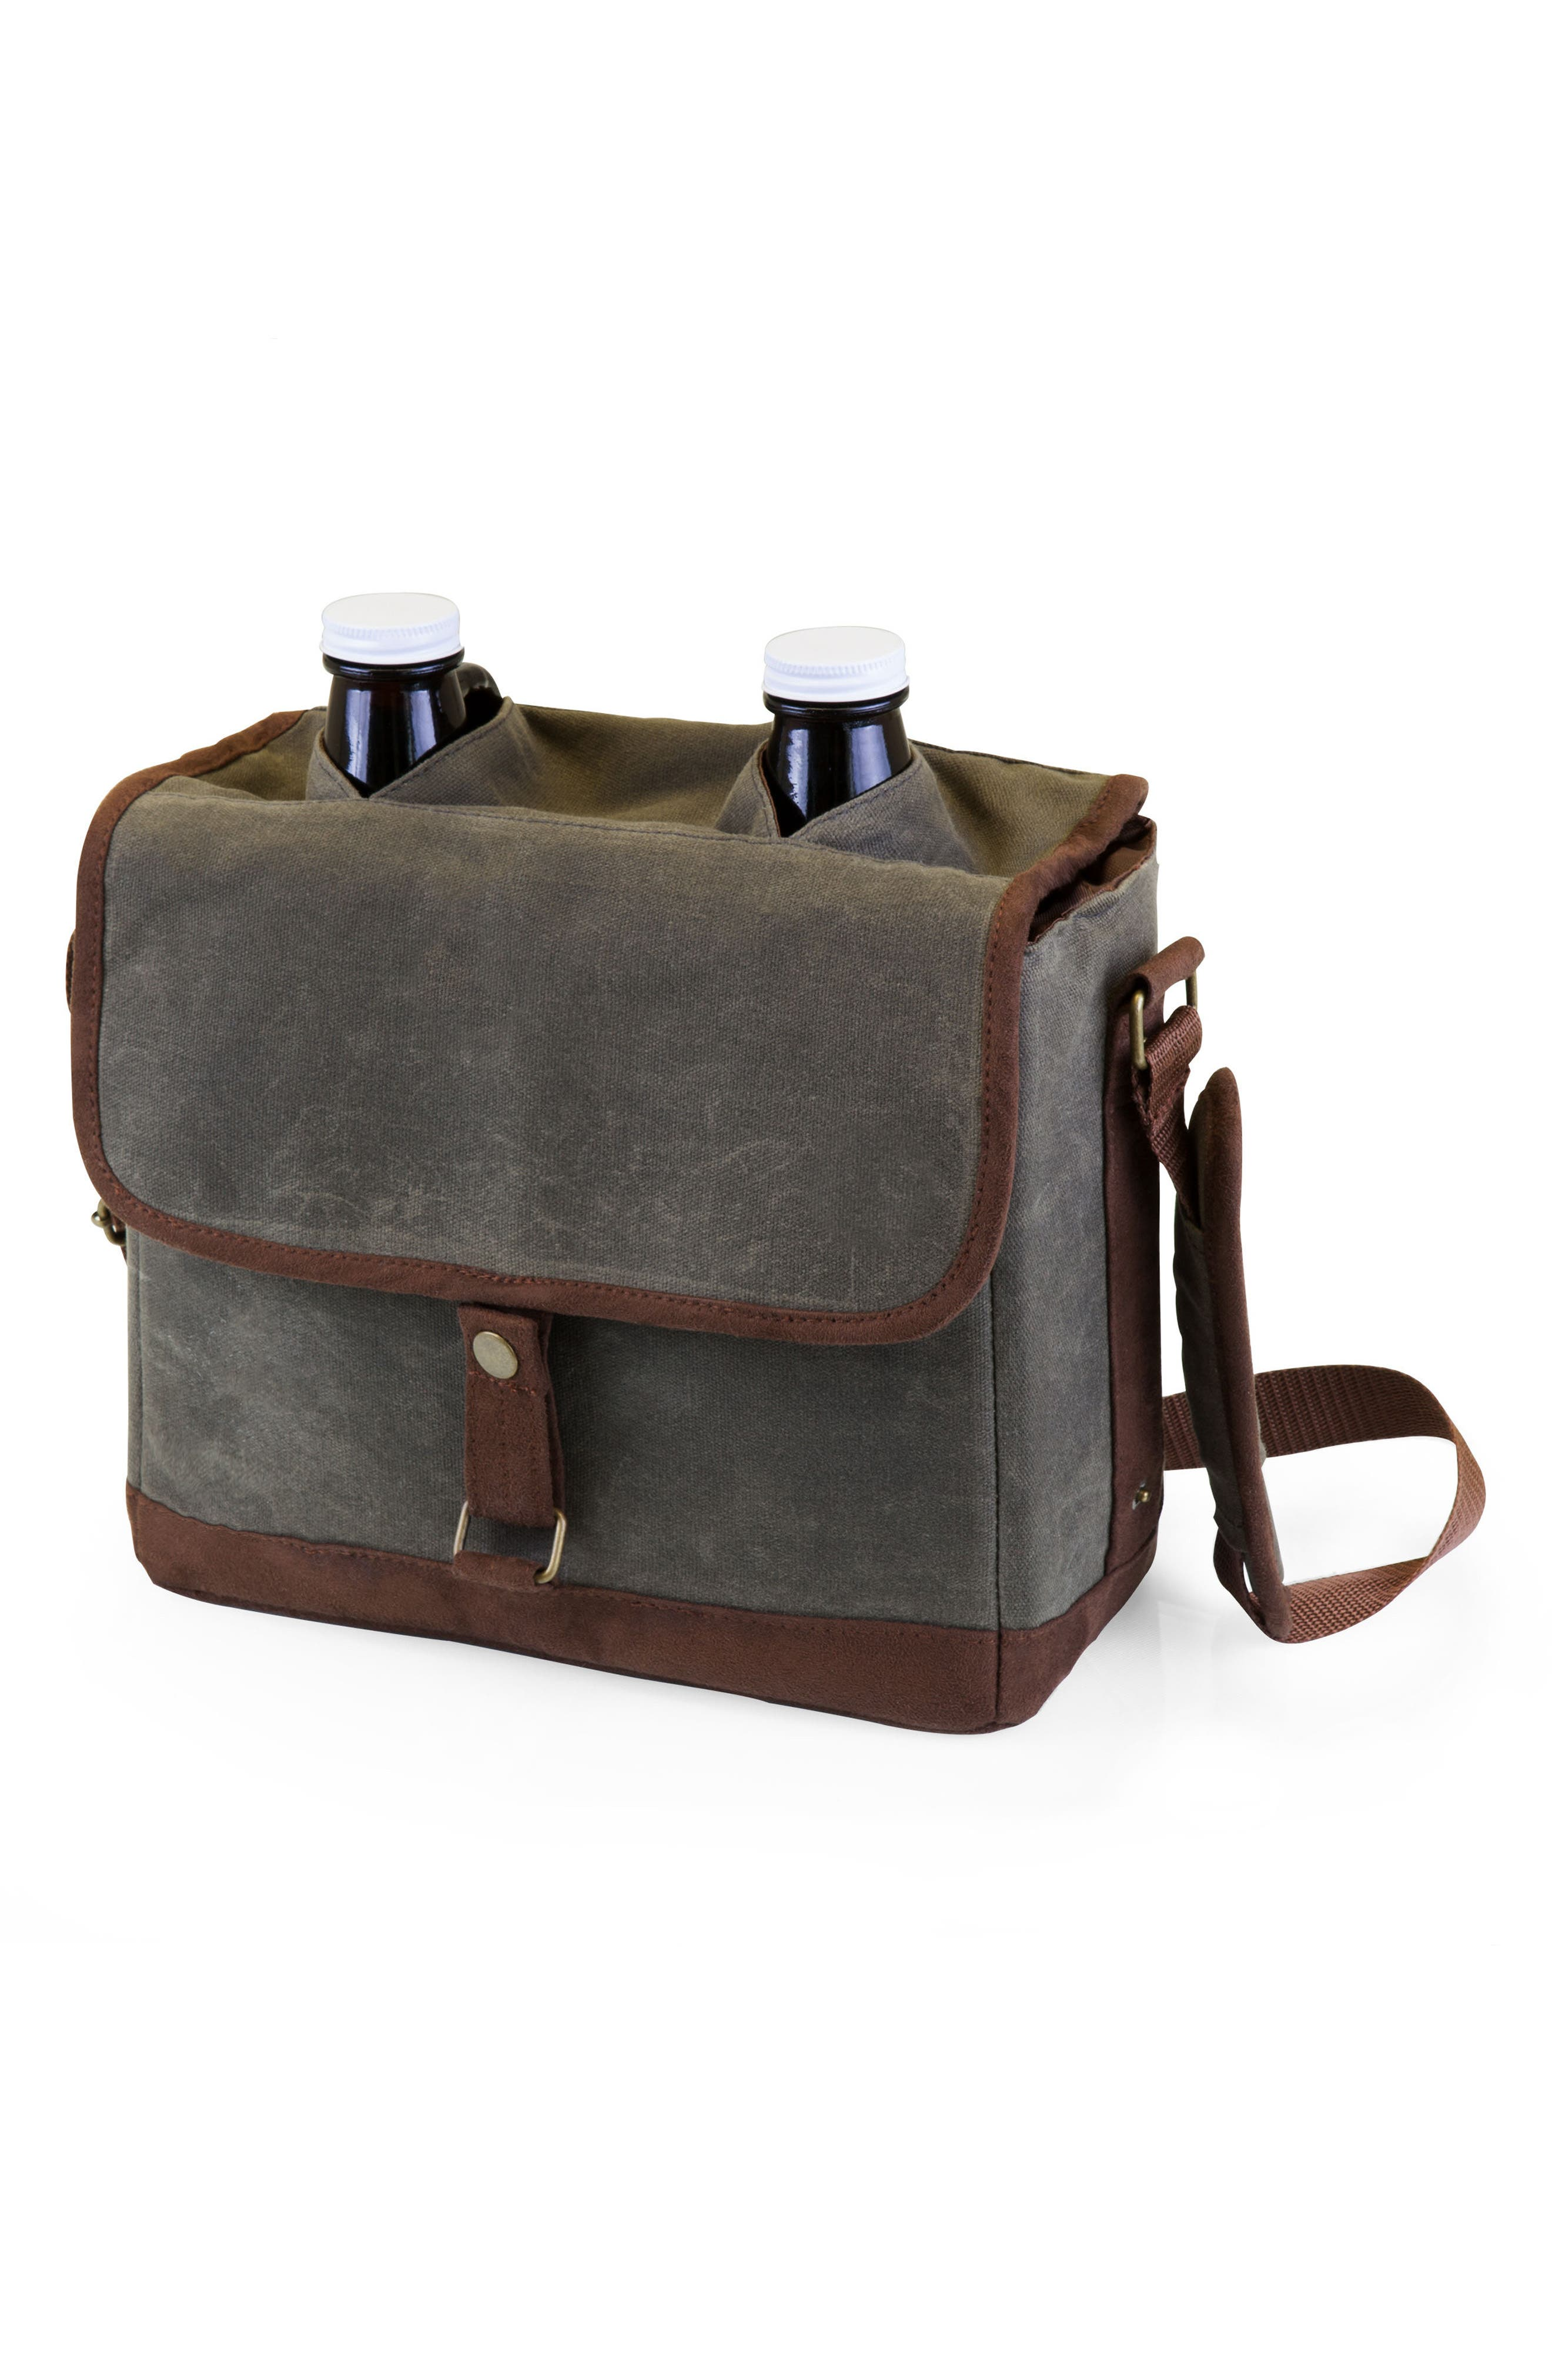 LEGACY Insulated Double Growler Tote & Growlers, Main, color, 301